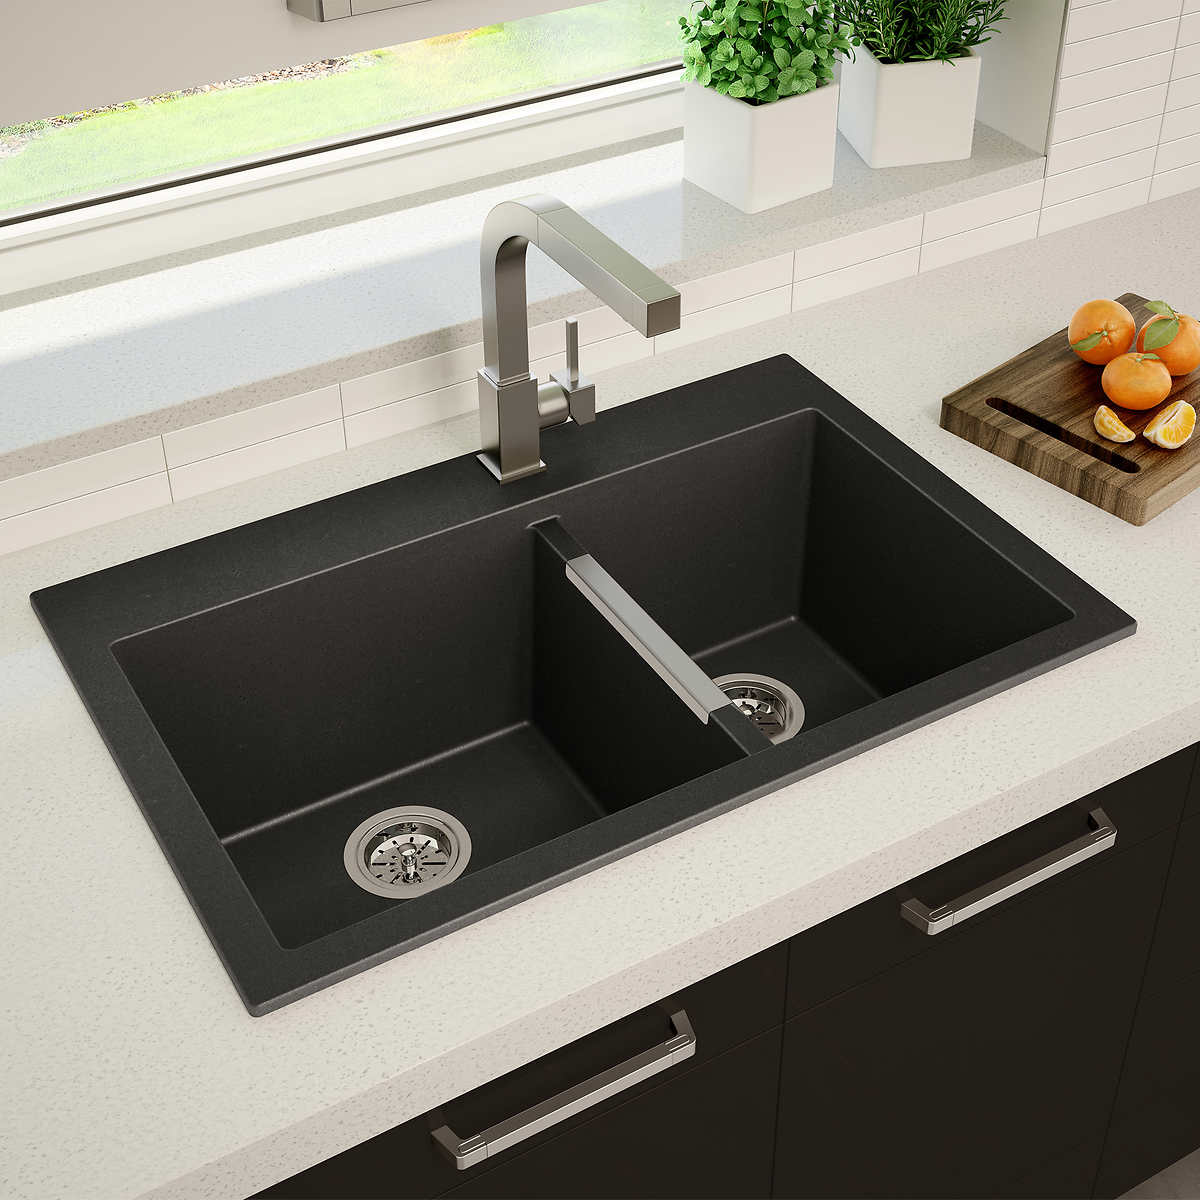 Artika 60/40 Double Bowl Black Granite Sink